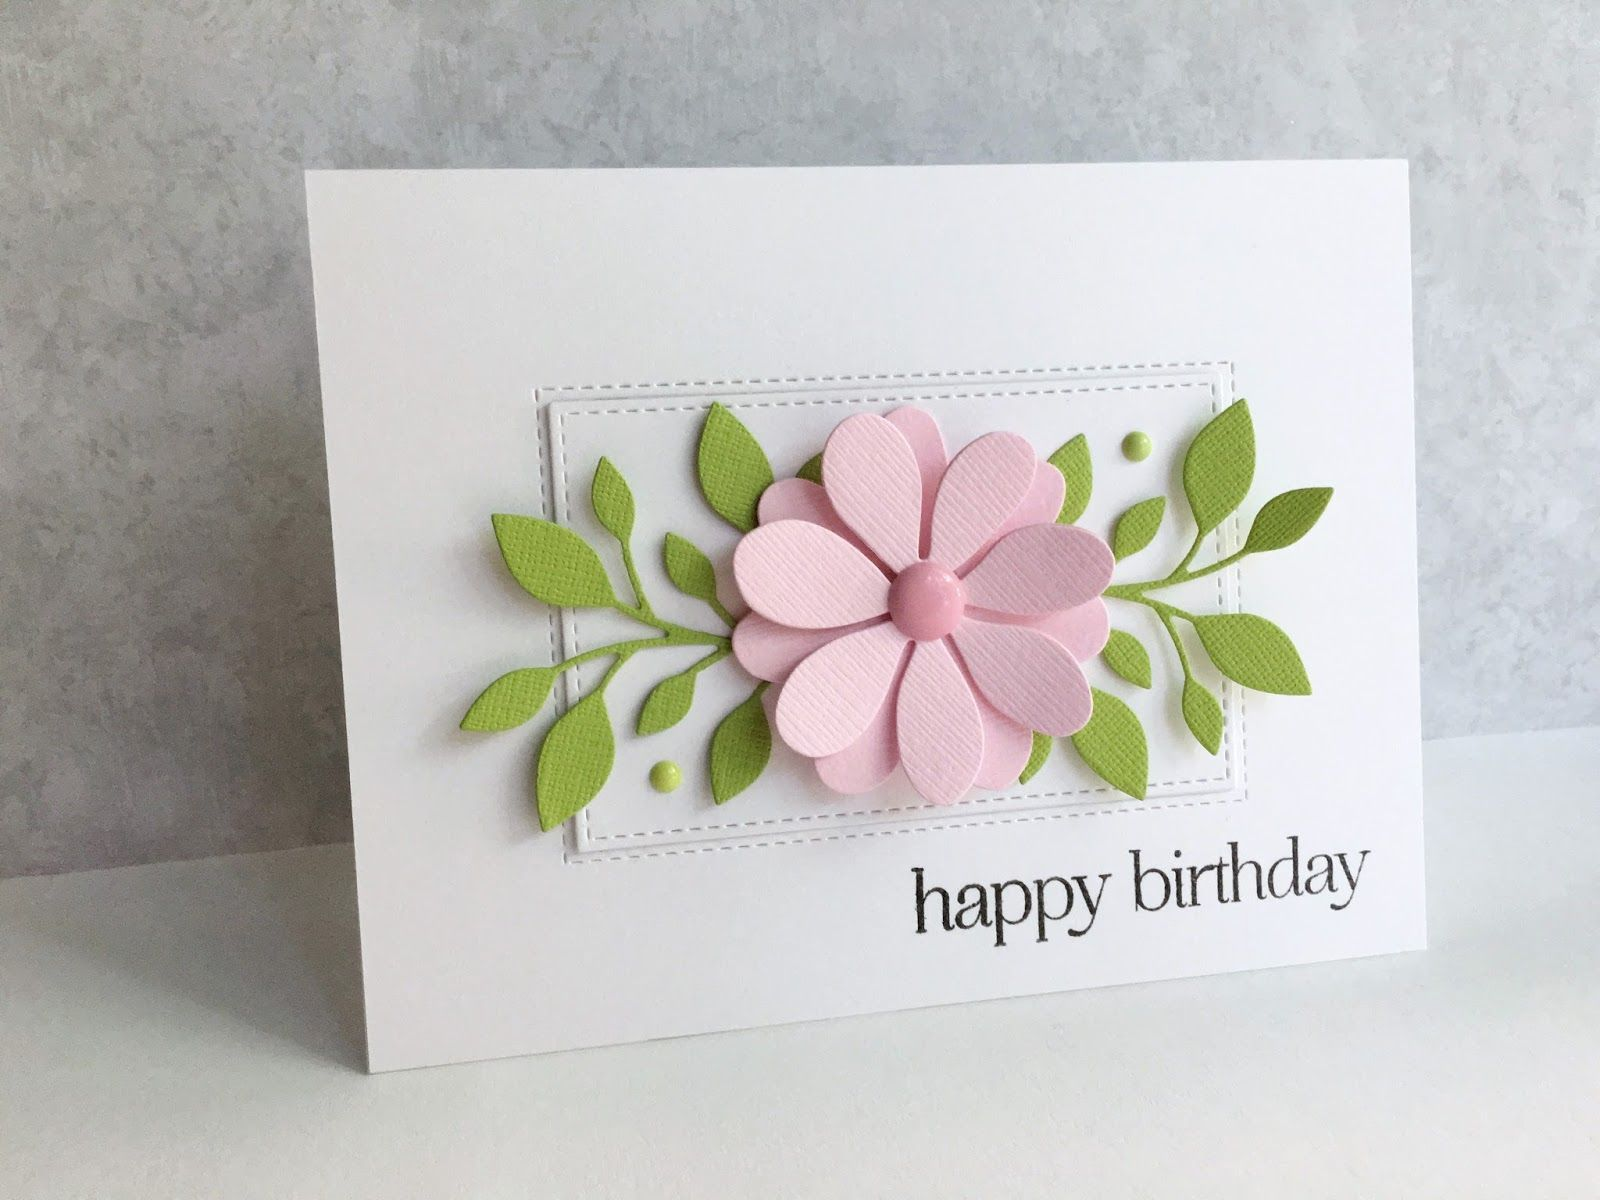 I'm in Haven: A Birthday Flower #flowercards